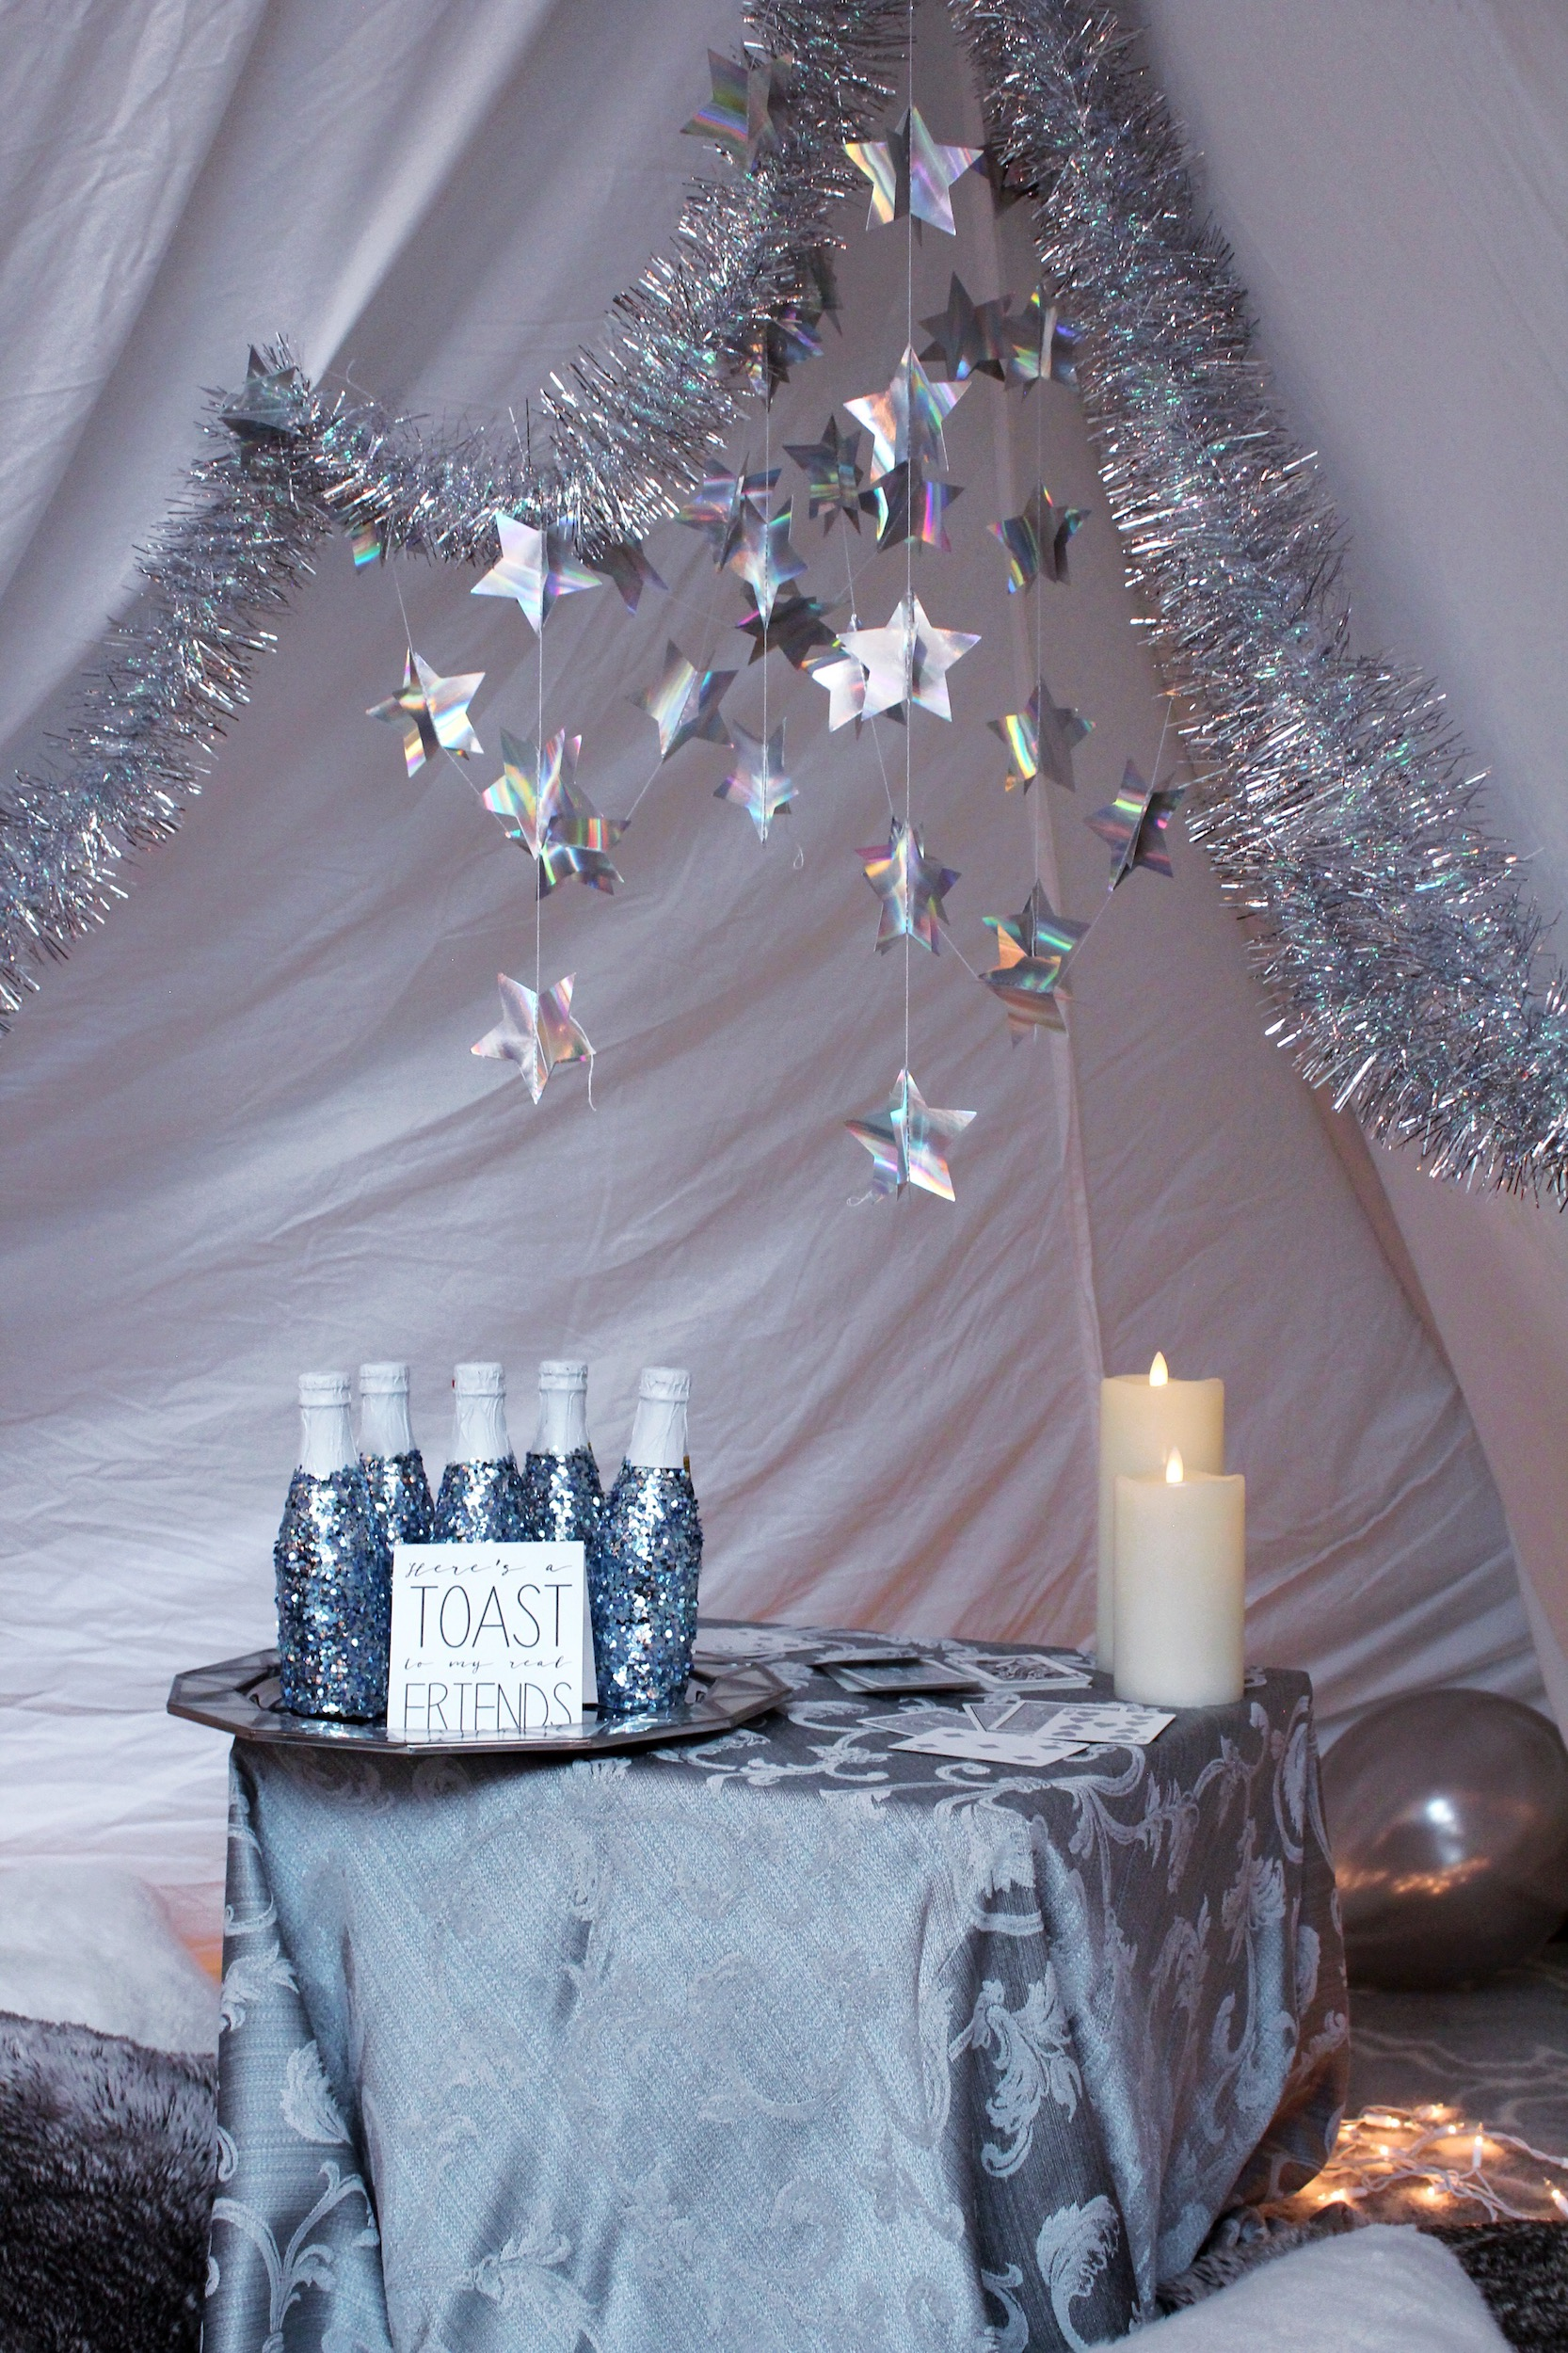 Taylor Swift Reputation Party New Year's Eve Decor_Design Organize Party.JPG